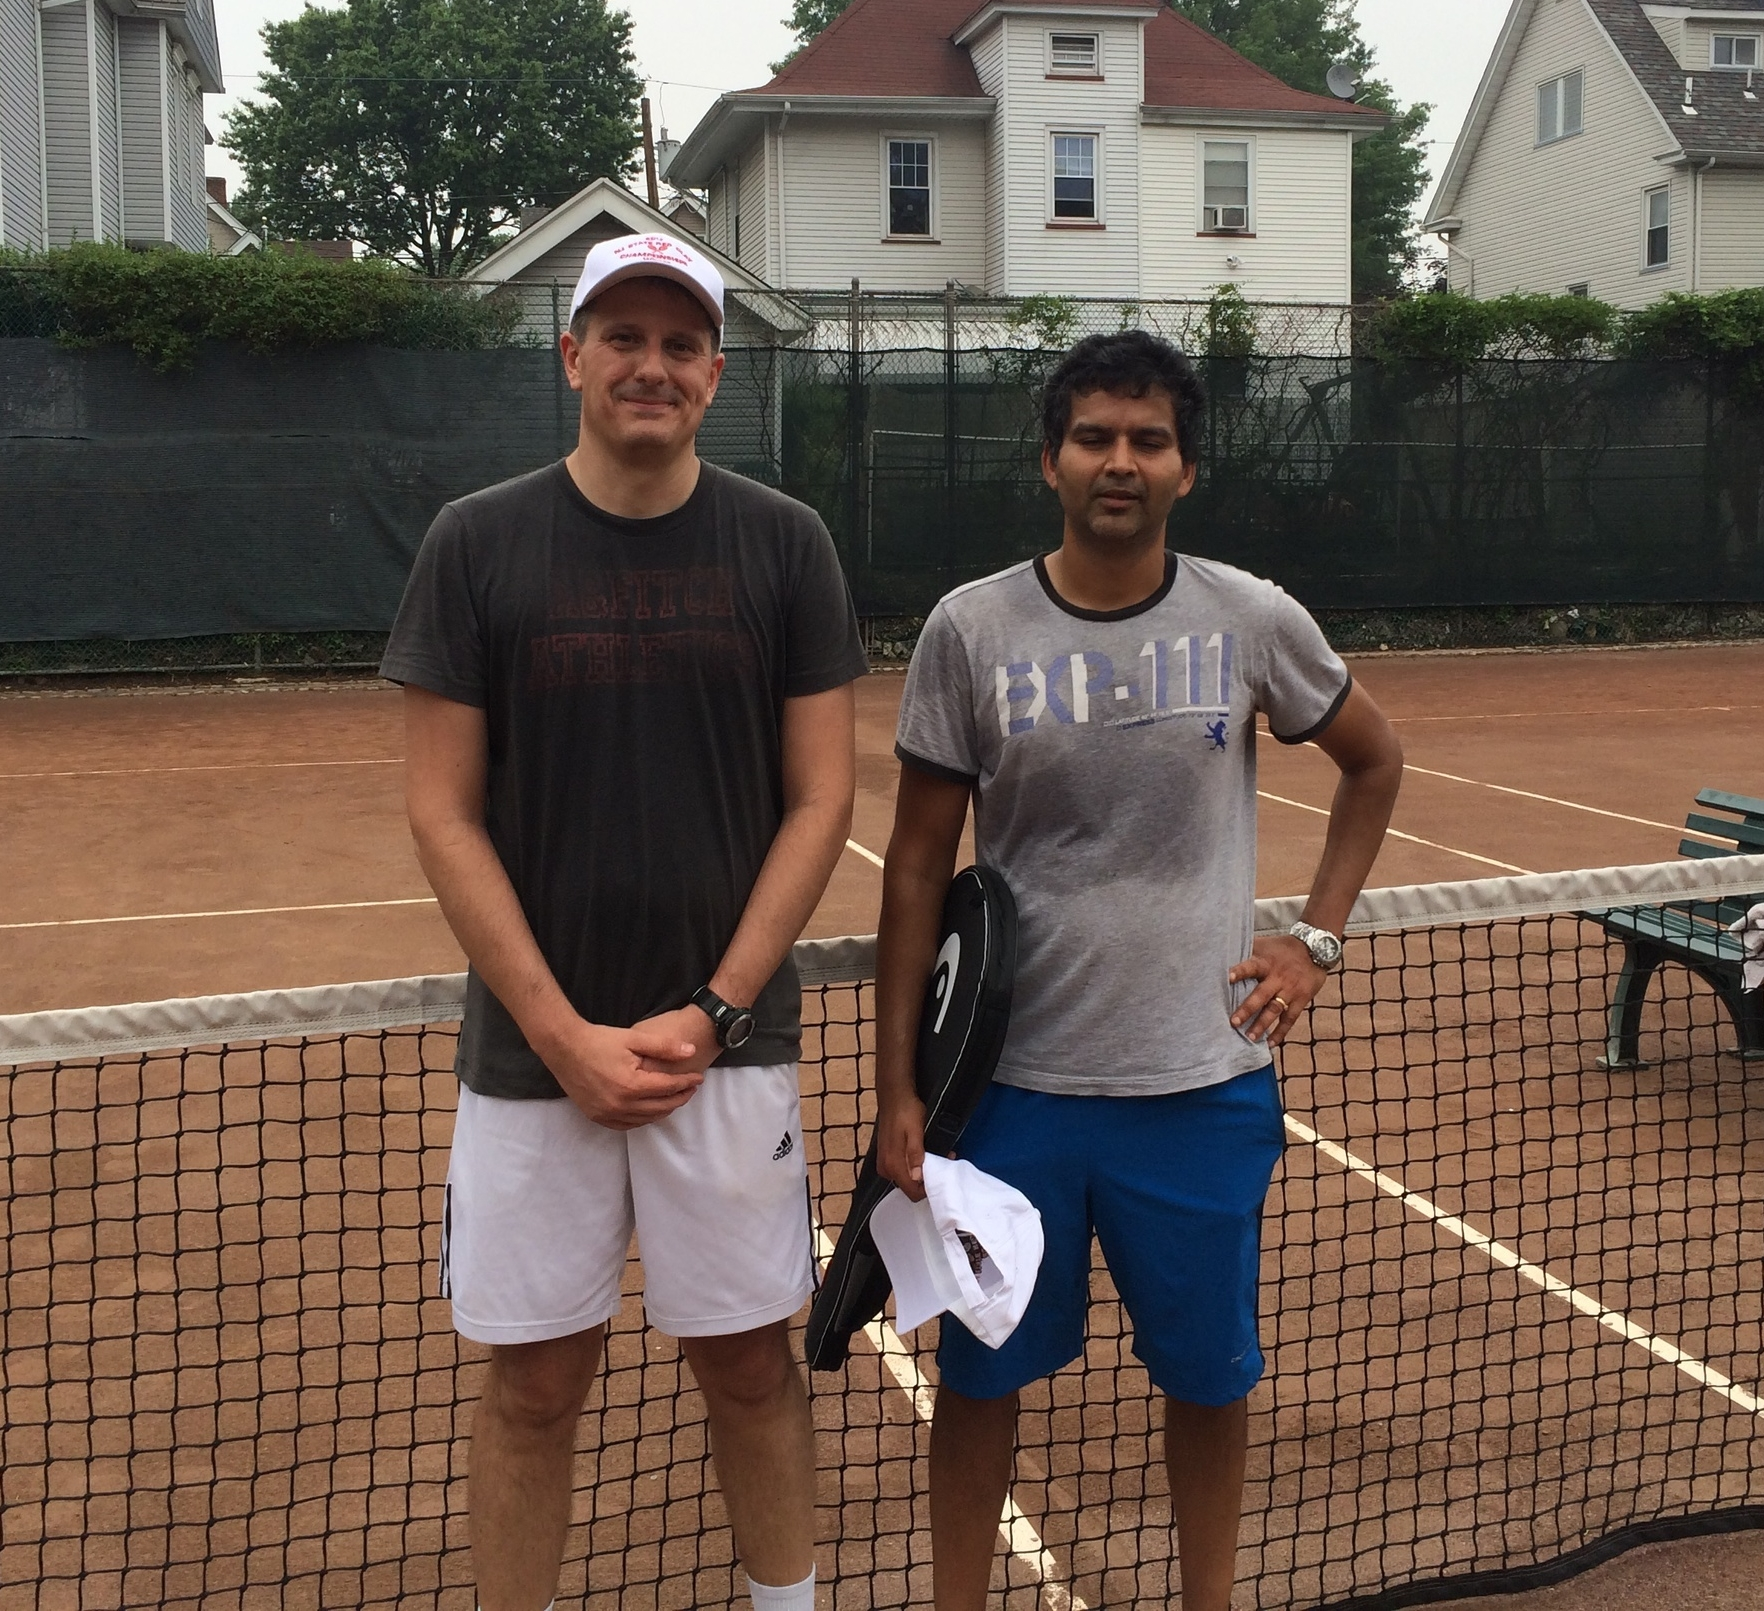 Men's 40+ Winner Marcello Arona (left) & Runner-up Sanjay Dugar (right)